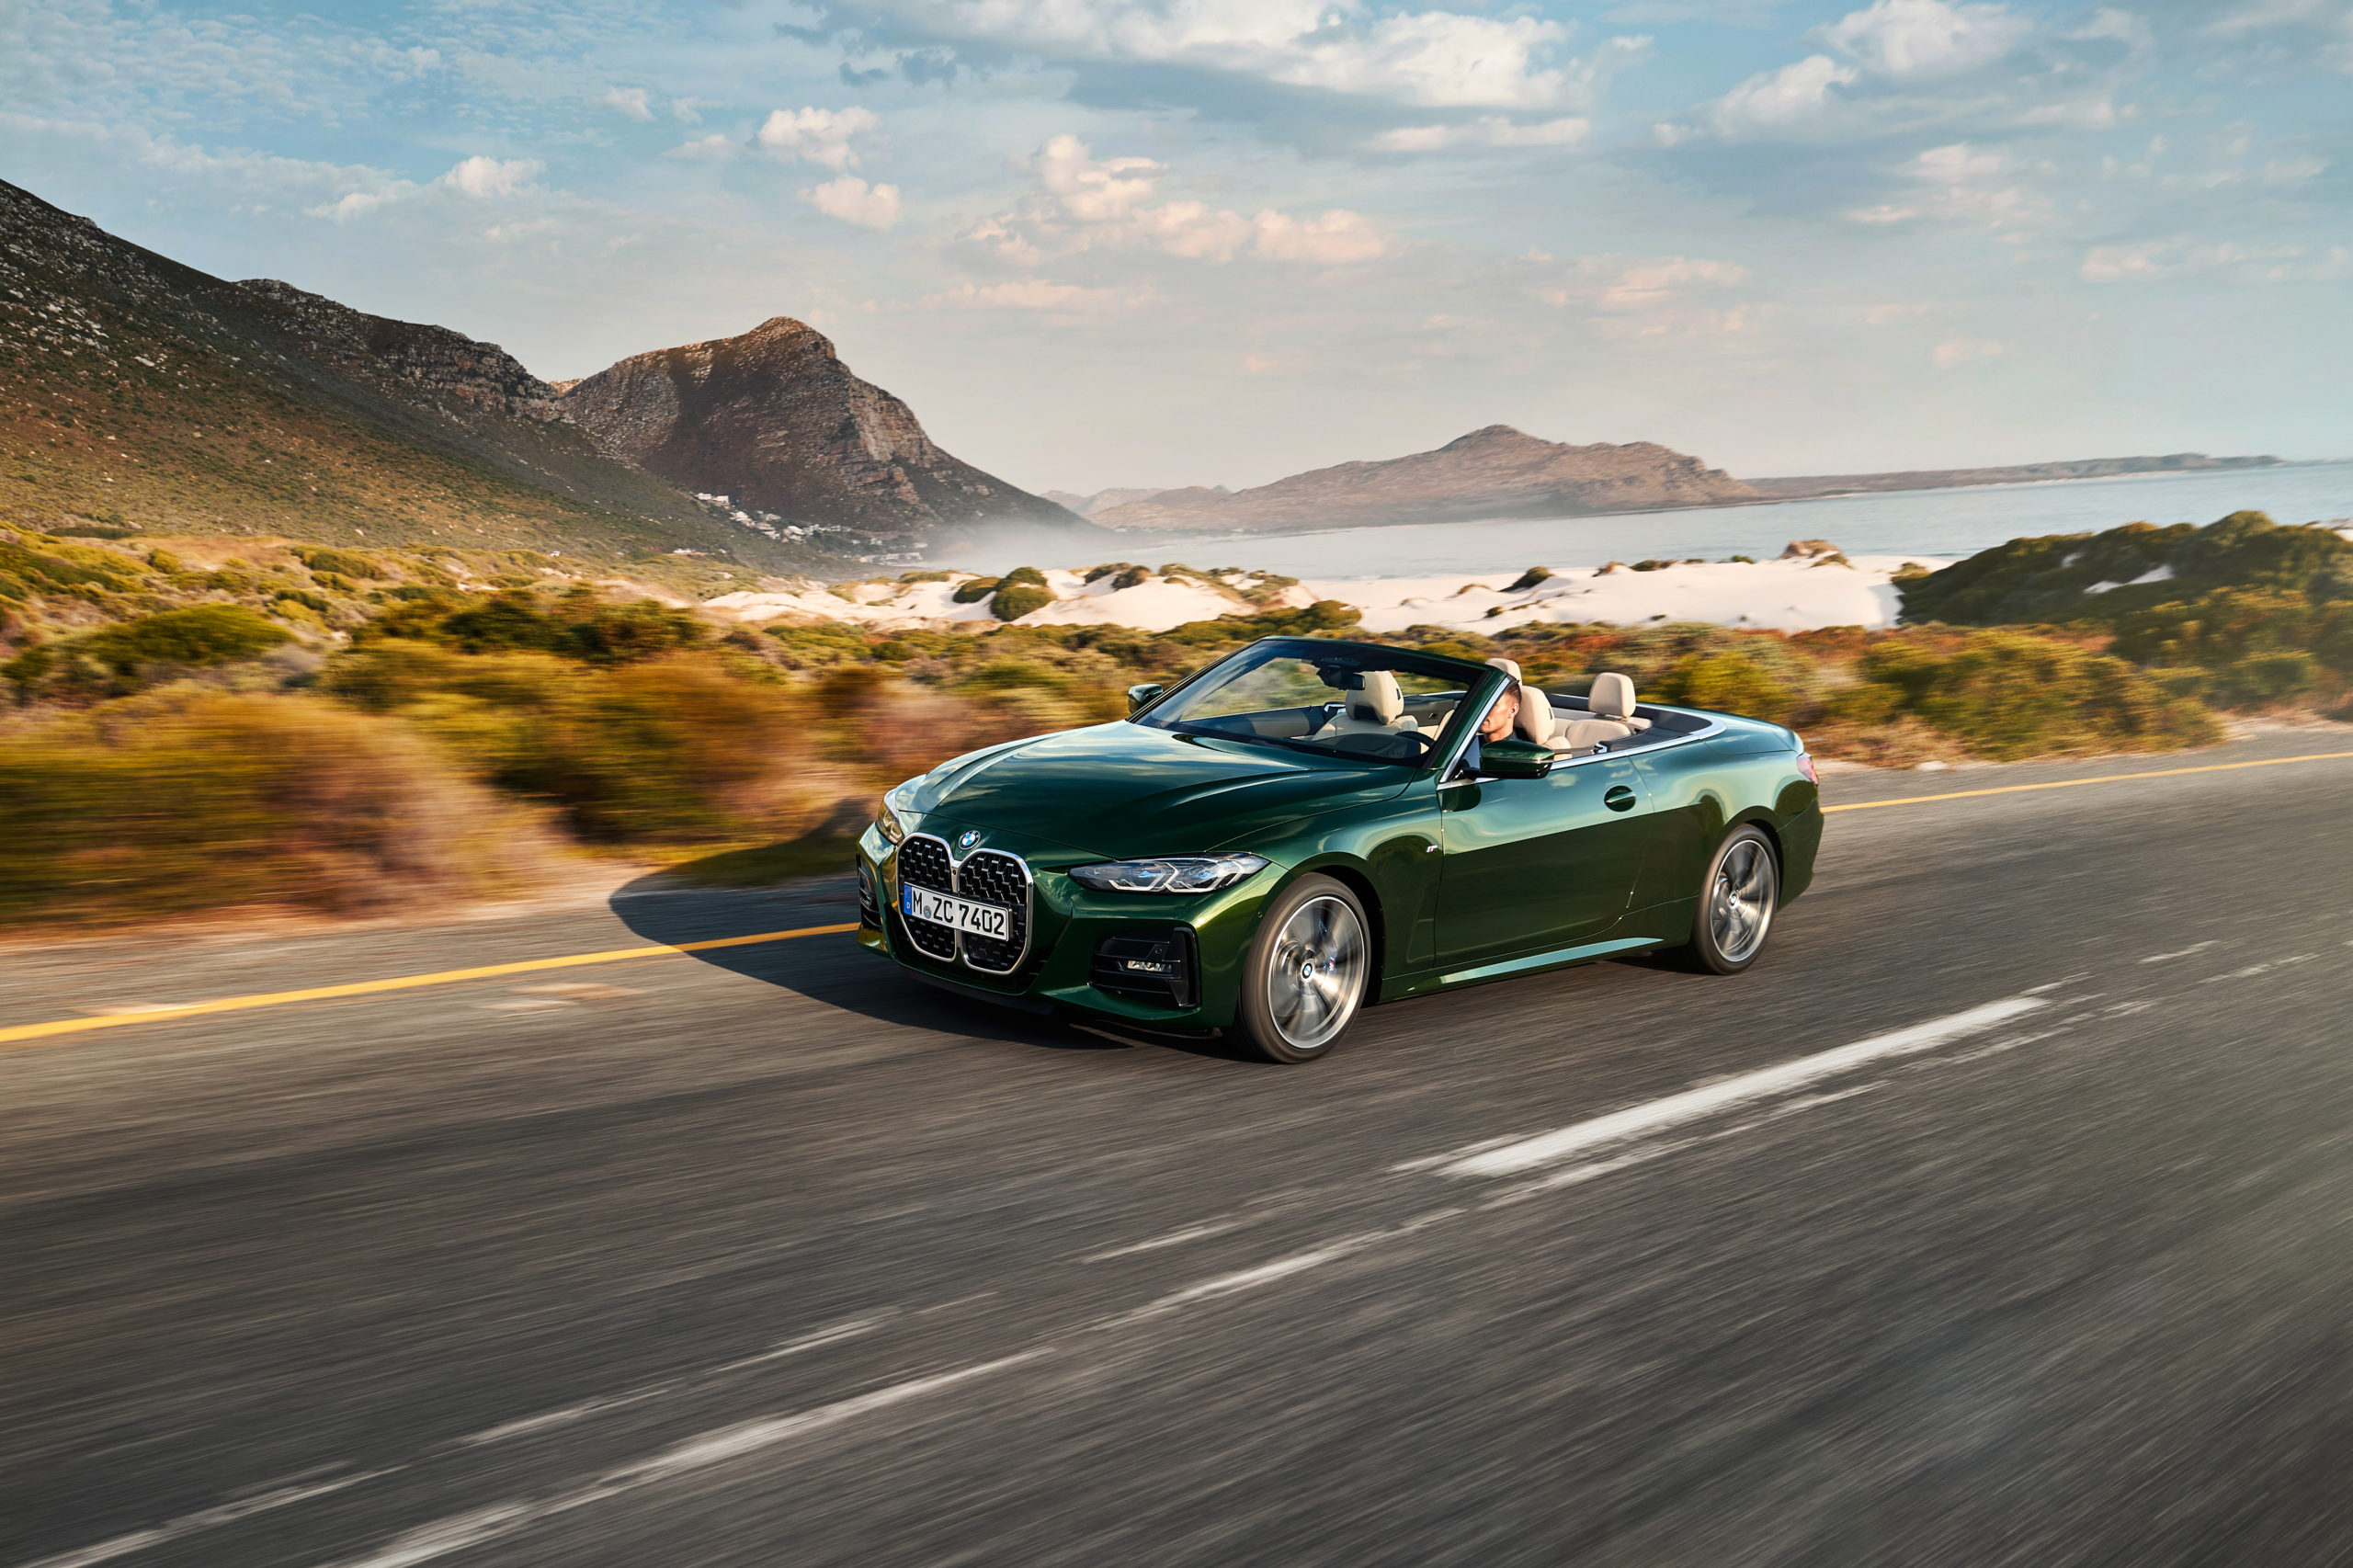 Green 2021 BMW 4 Series Convertible on road